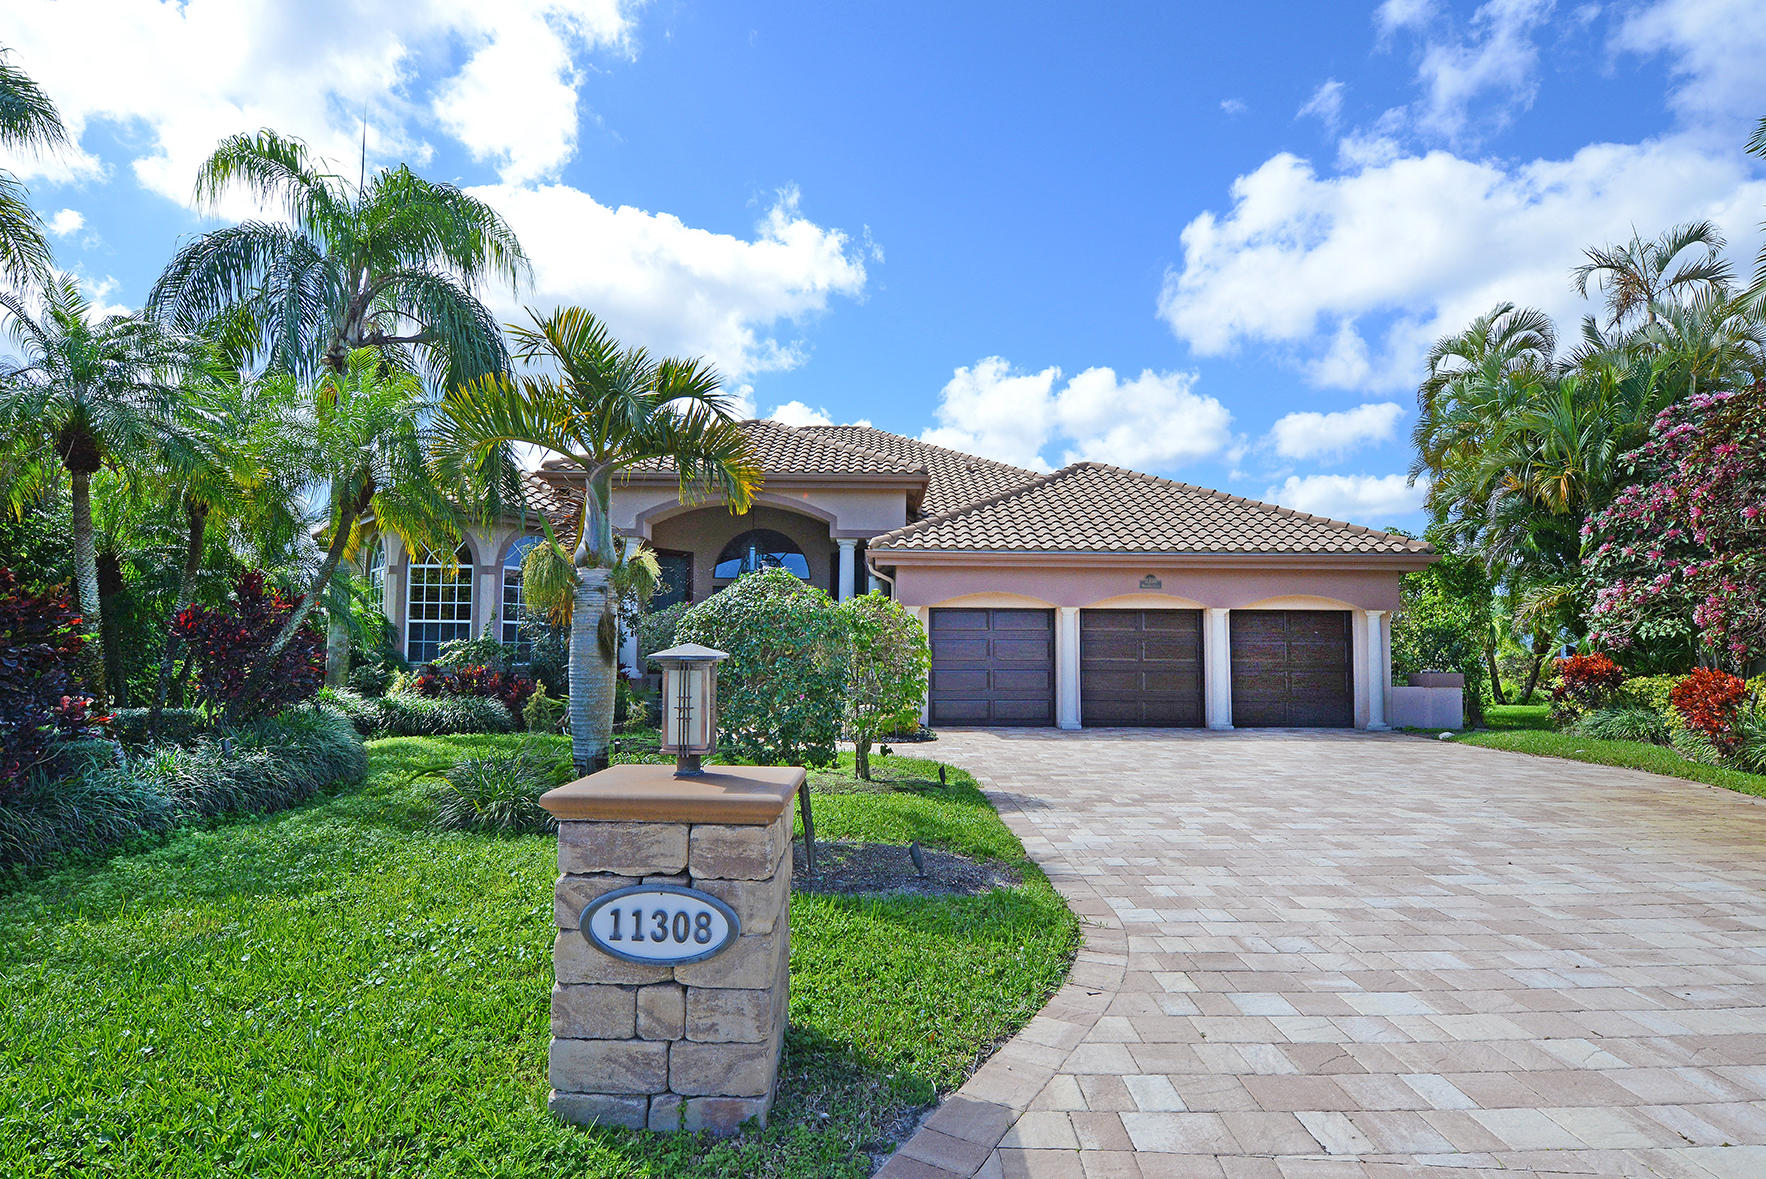 11308 Westland Circle Boynton Beach 33437 - photo